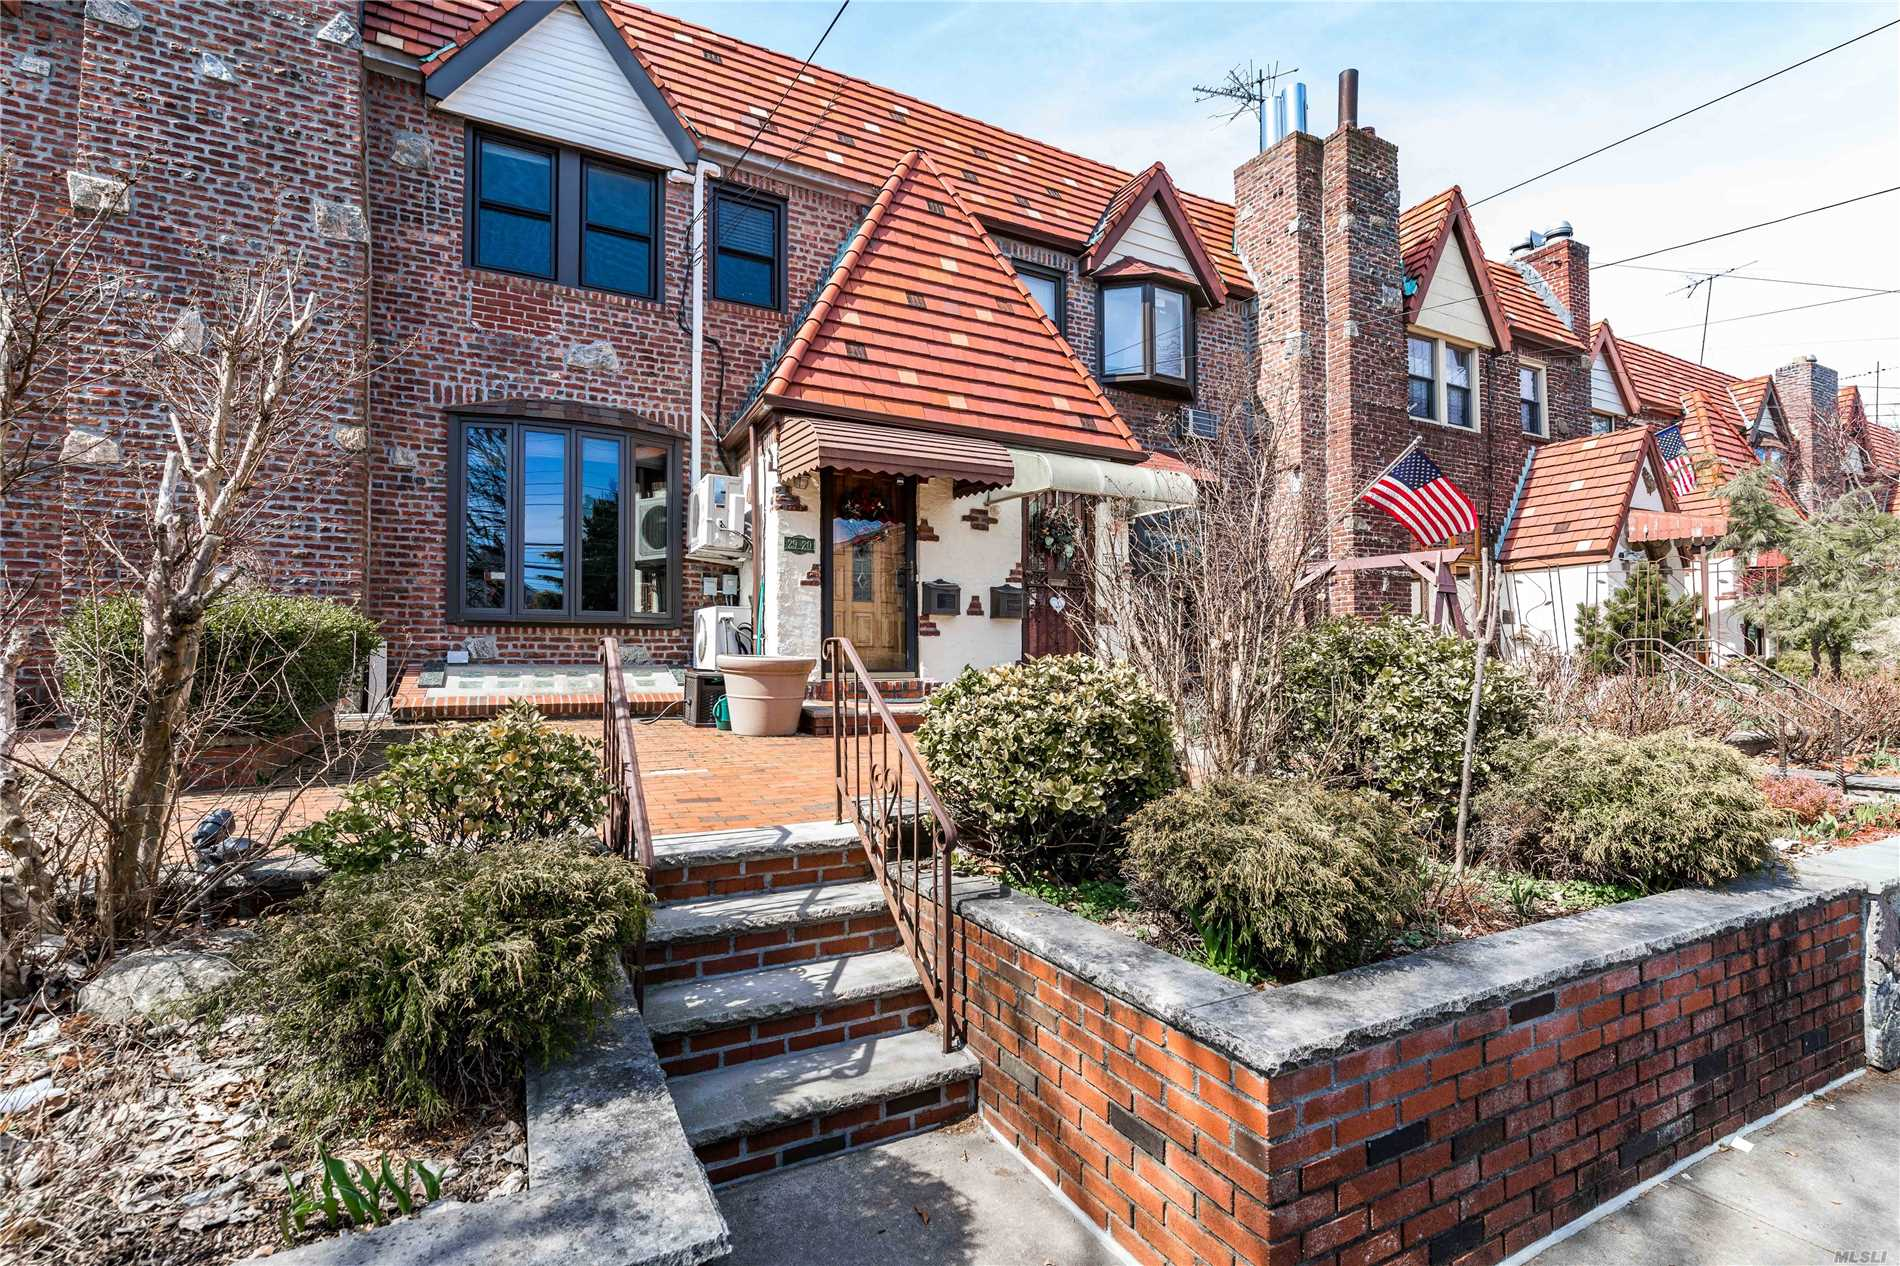 Immaculate Single Family Tudor in Prime Bayside, Queens, Just A Few Blocks To Utopia Pkwy/Francis Lewis Blvd Intersection and Clearview Expressway. 1st Floor Consists Of Beautiful Modern Kitchen W/ Stainless Steel Appliances And Custom Breakfast Bar; Living Room W/ Fireplace, Formal Dining Room + Half Bath; Three Large Bedrooms On 2nd Floor W/ Custom Closets And Gorgeous Full Bath; Full Finished Basement W/ OSE. Attached Garage In Rear W/ Custom Deck Above, Great For Summer Gatherings!